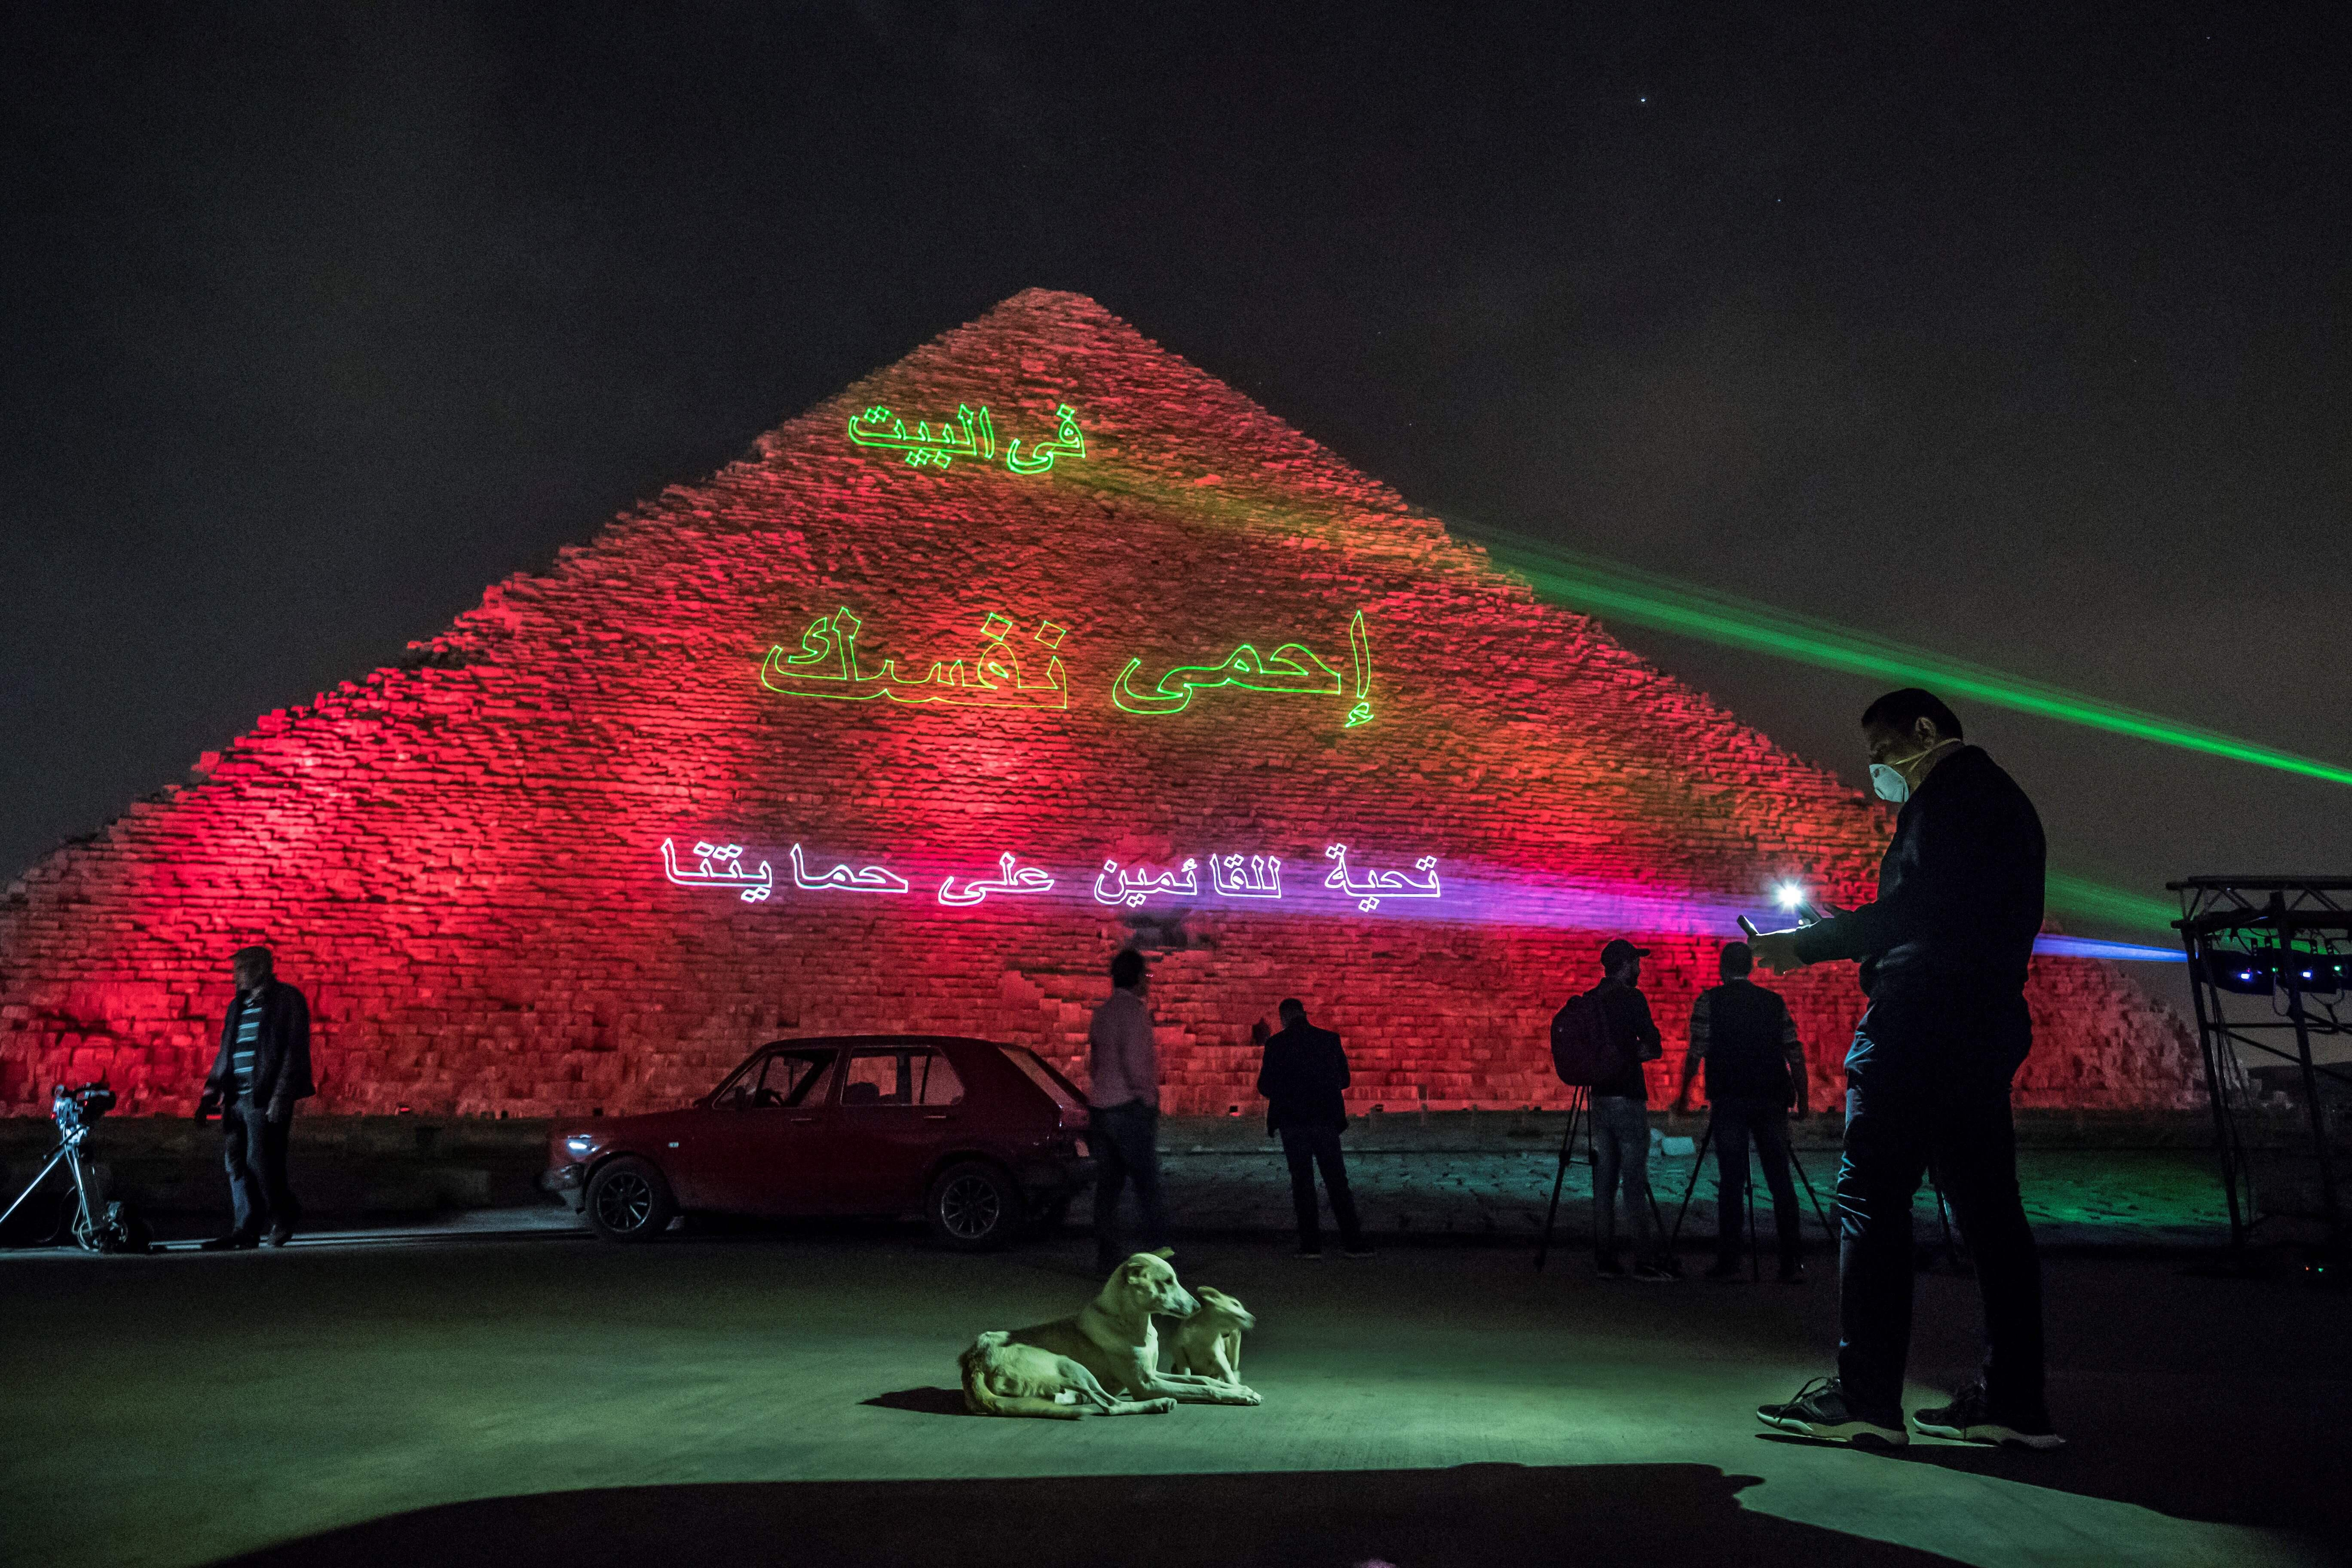 Great Pyramid sends a message